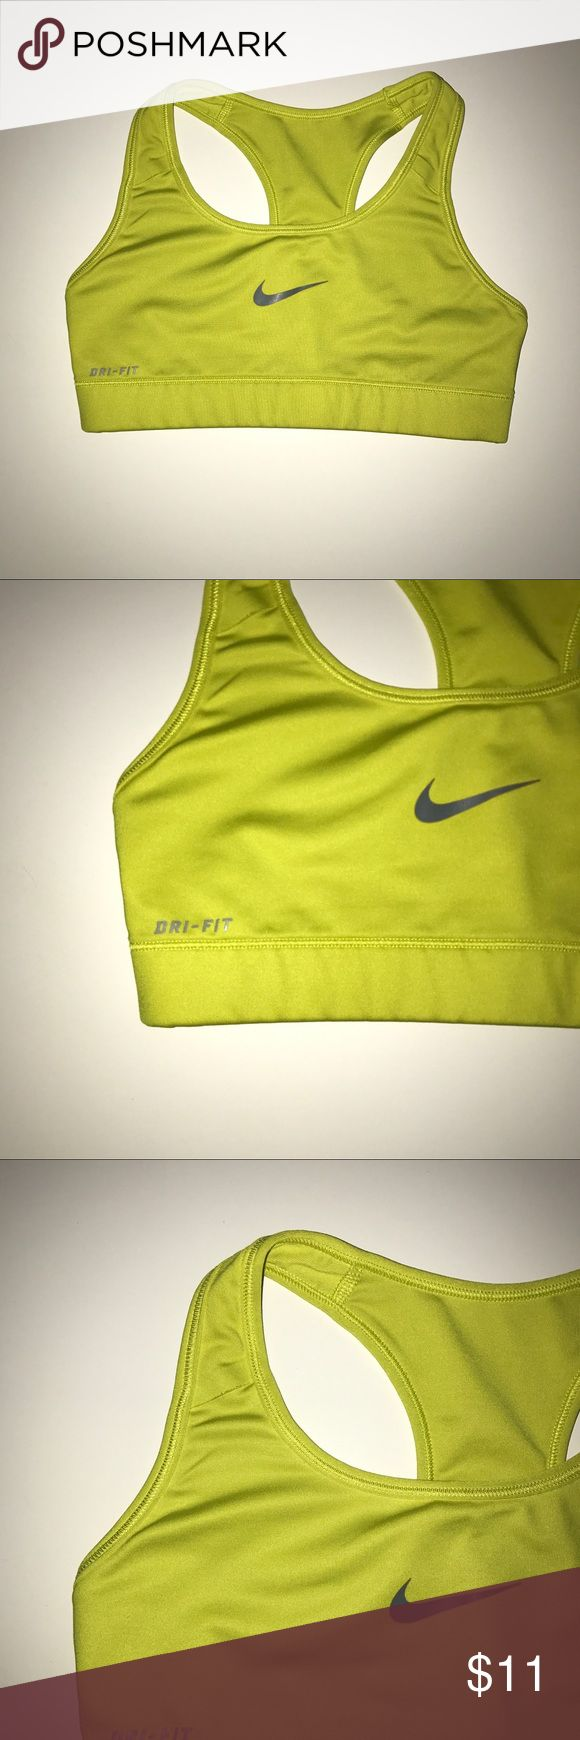 "Nike Dri-Fit; LimeGreen Workout Sports Bra, Size S -From the brand Nike Dri-Fit. -Tag was removed, but runs like a size small. Approximate measurements: •Length: 9 3/4"" •Armpit/Armpit: 13"" •Sleeve length: 1 1/2"" -Lime green/yellow shade. -Straps aren't adjustable. -Stretchy material. Nike Intimates & Sleepwear Bras"